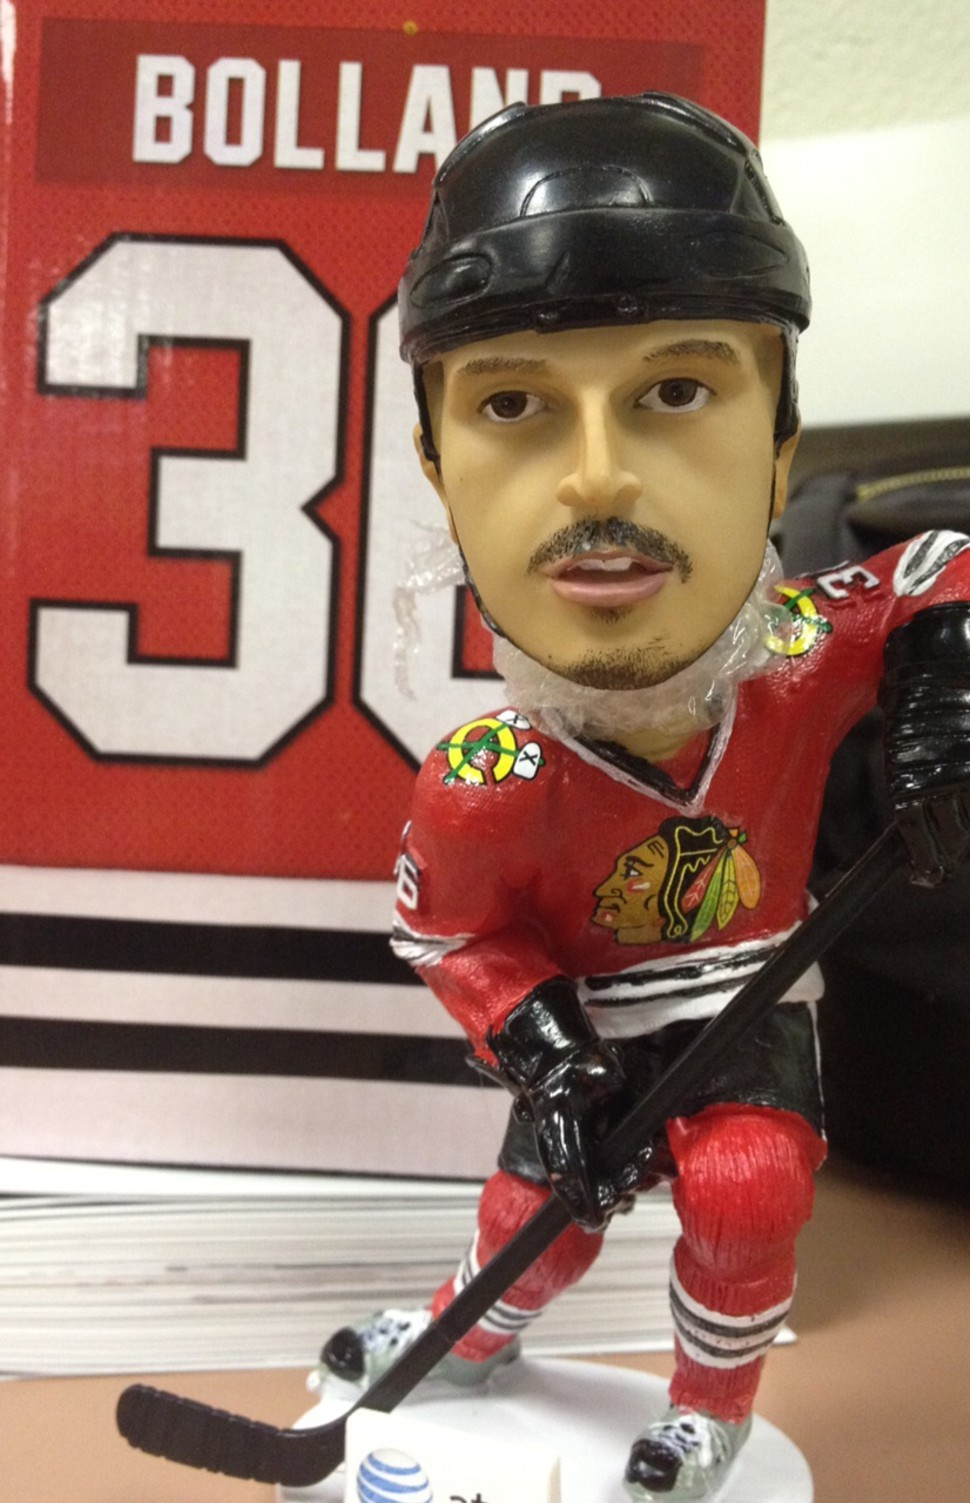 It was Dave Bolland bobblehead night for a game of important bounces.